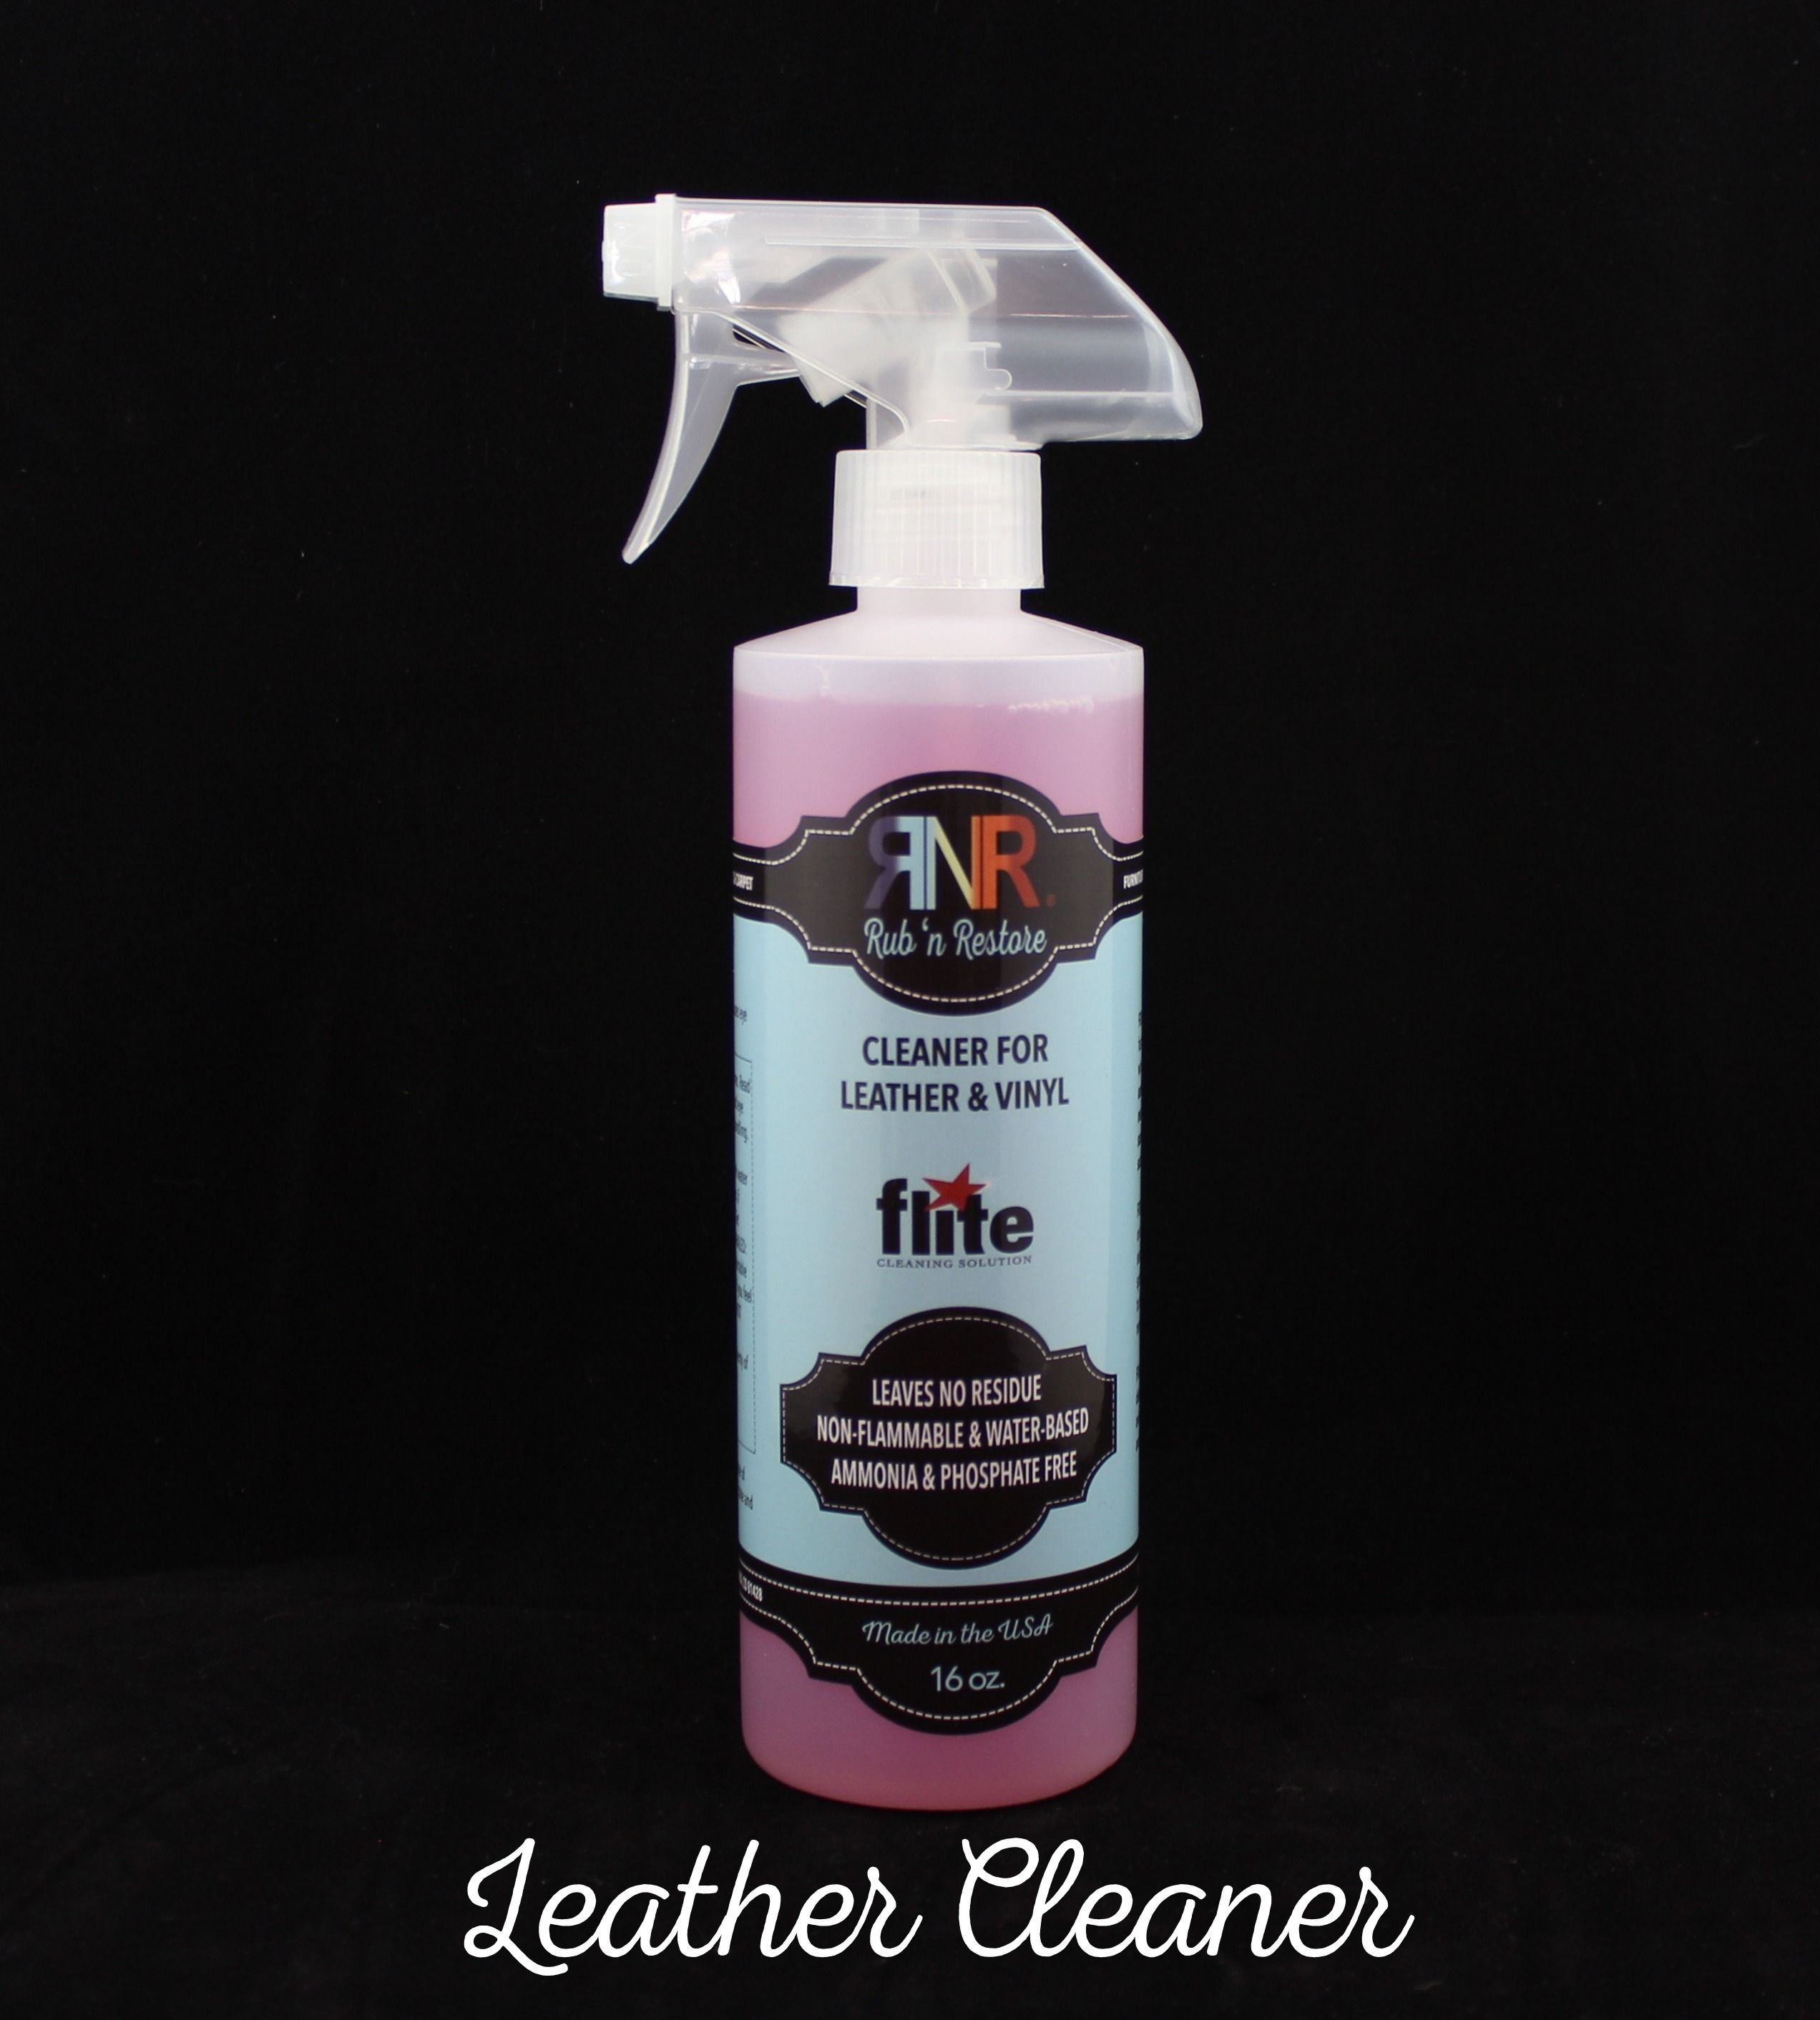 Marine Vinyl Cleaner Degreaser Safe For Finished Leathers Too Diy Cleaning Spray Leather Furniture Cleaner Leather Furniture